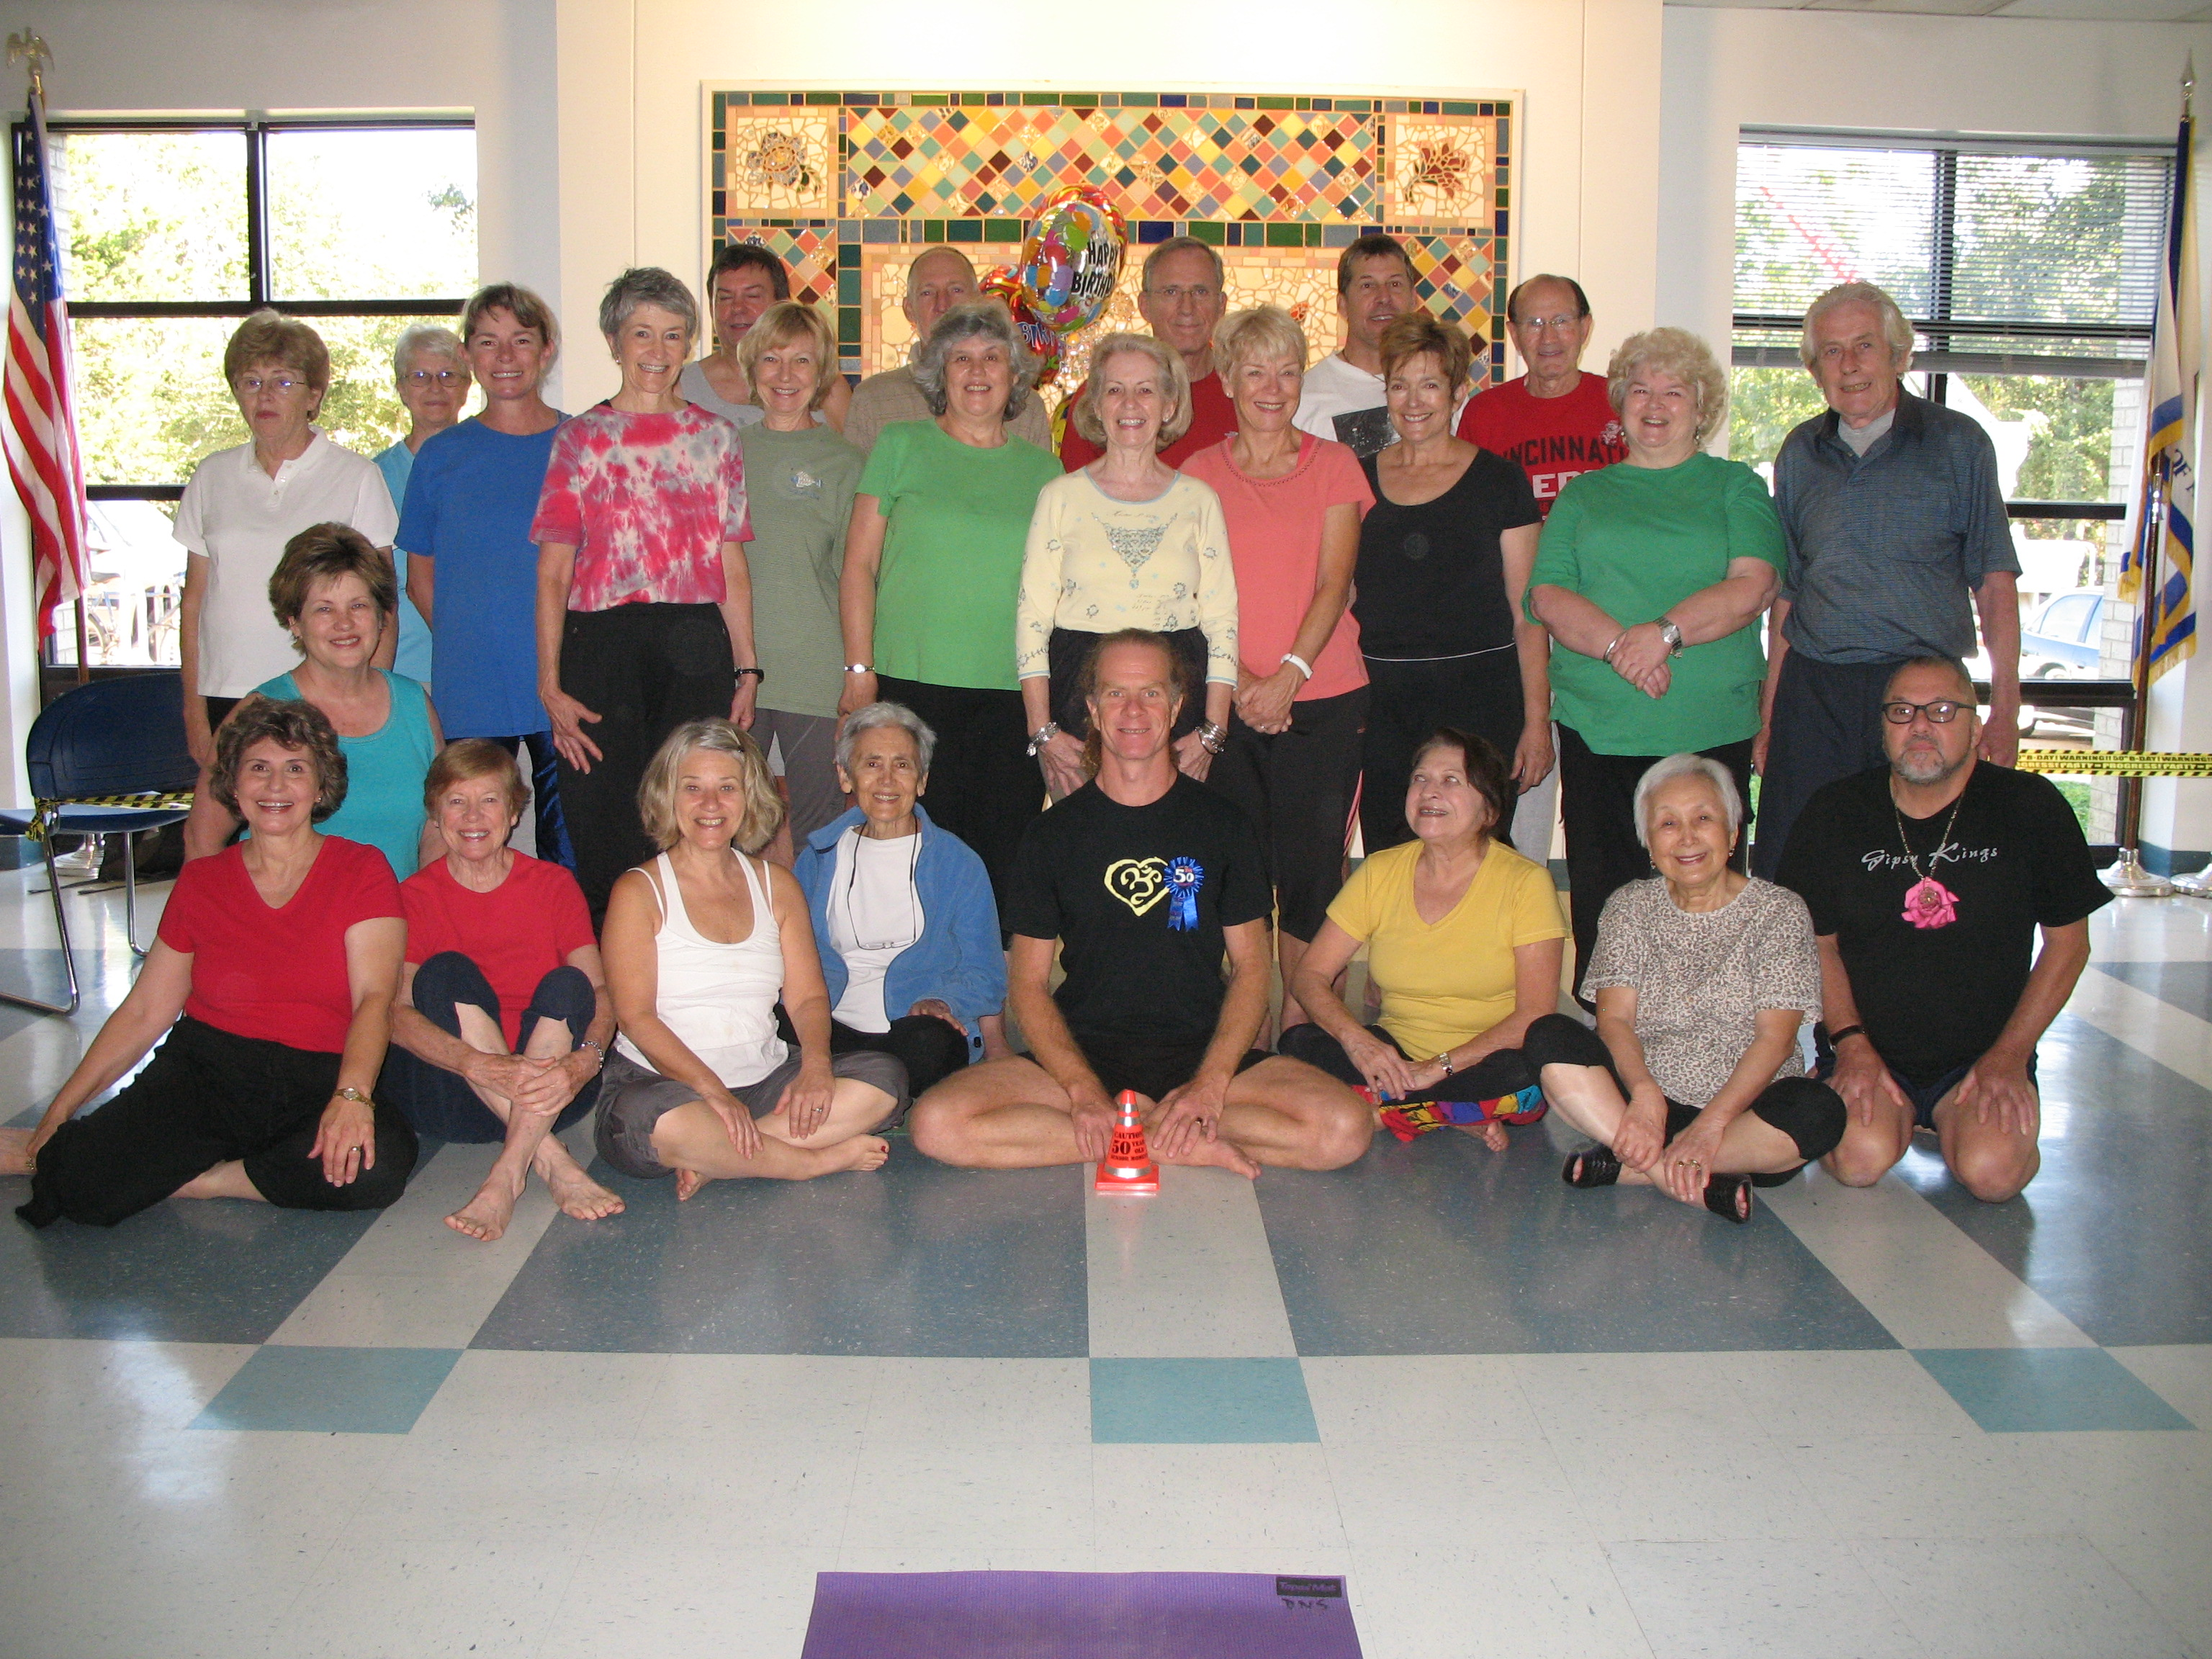 Austin Soul Yogaara Yoga Classes Taught By Charly Pivert Austin Soul Yoga